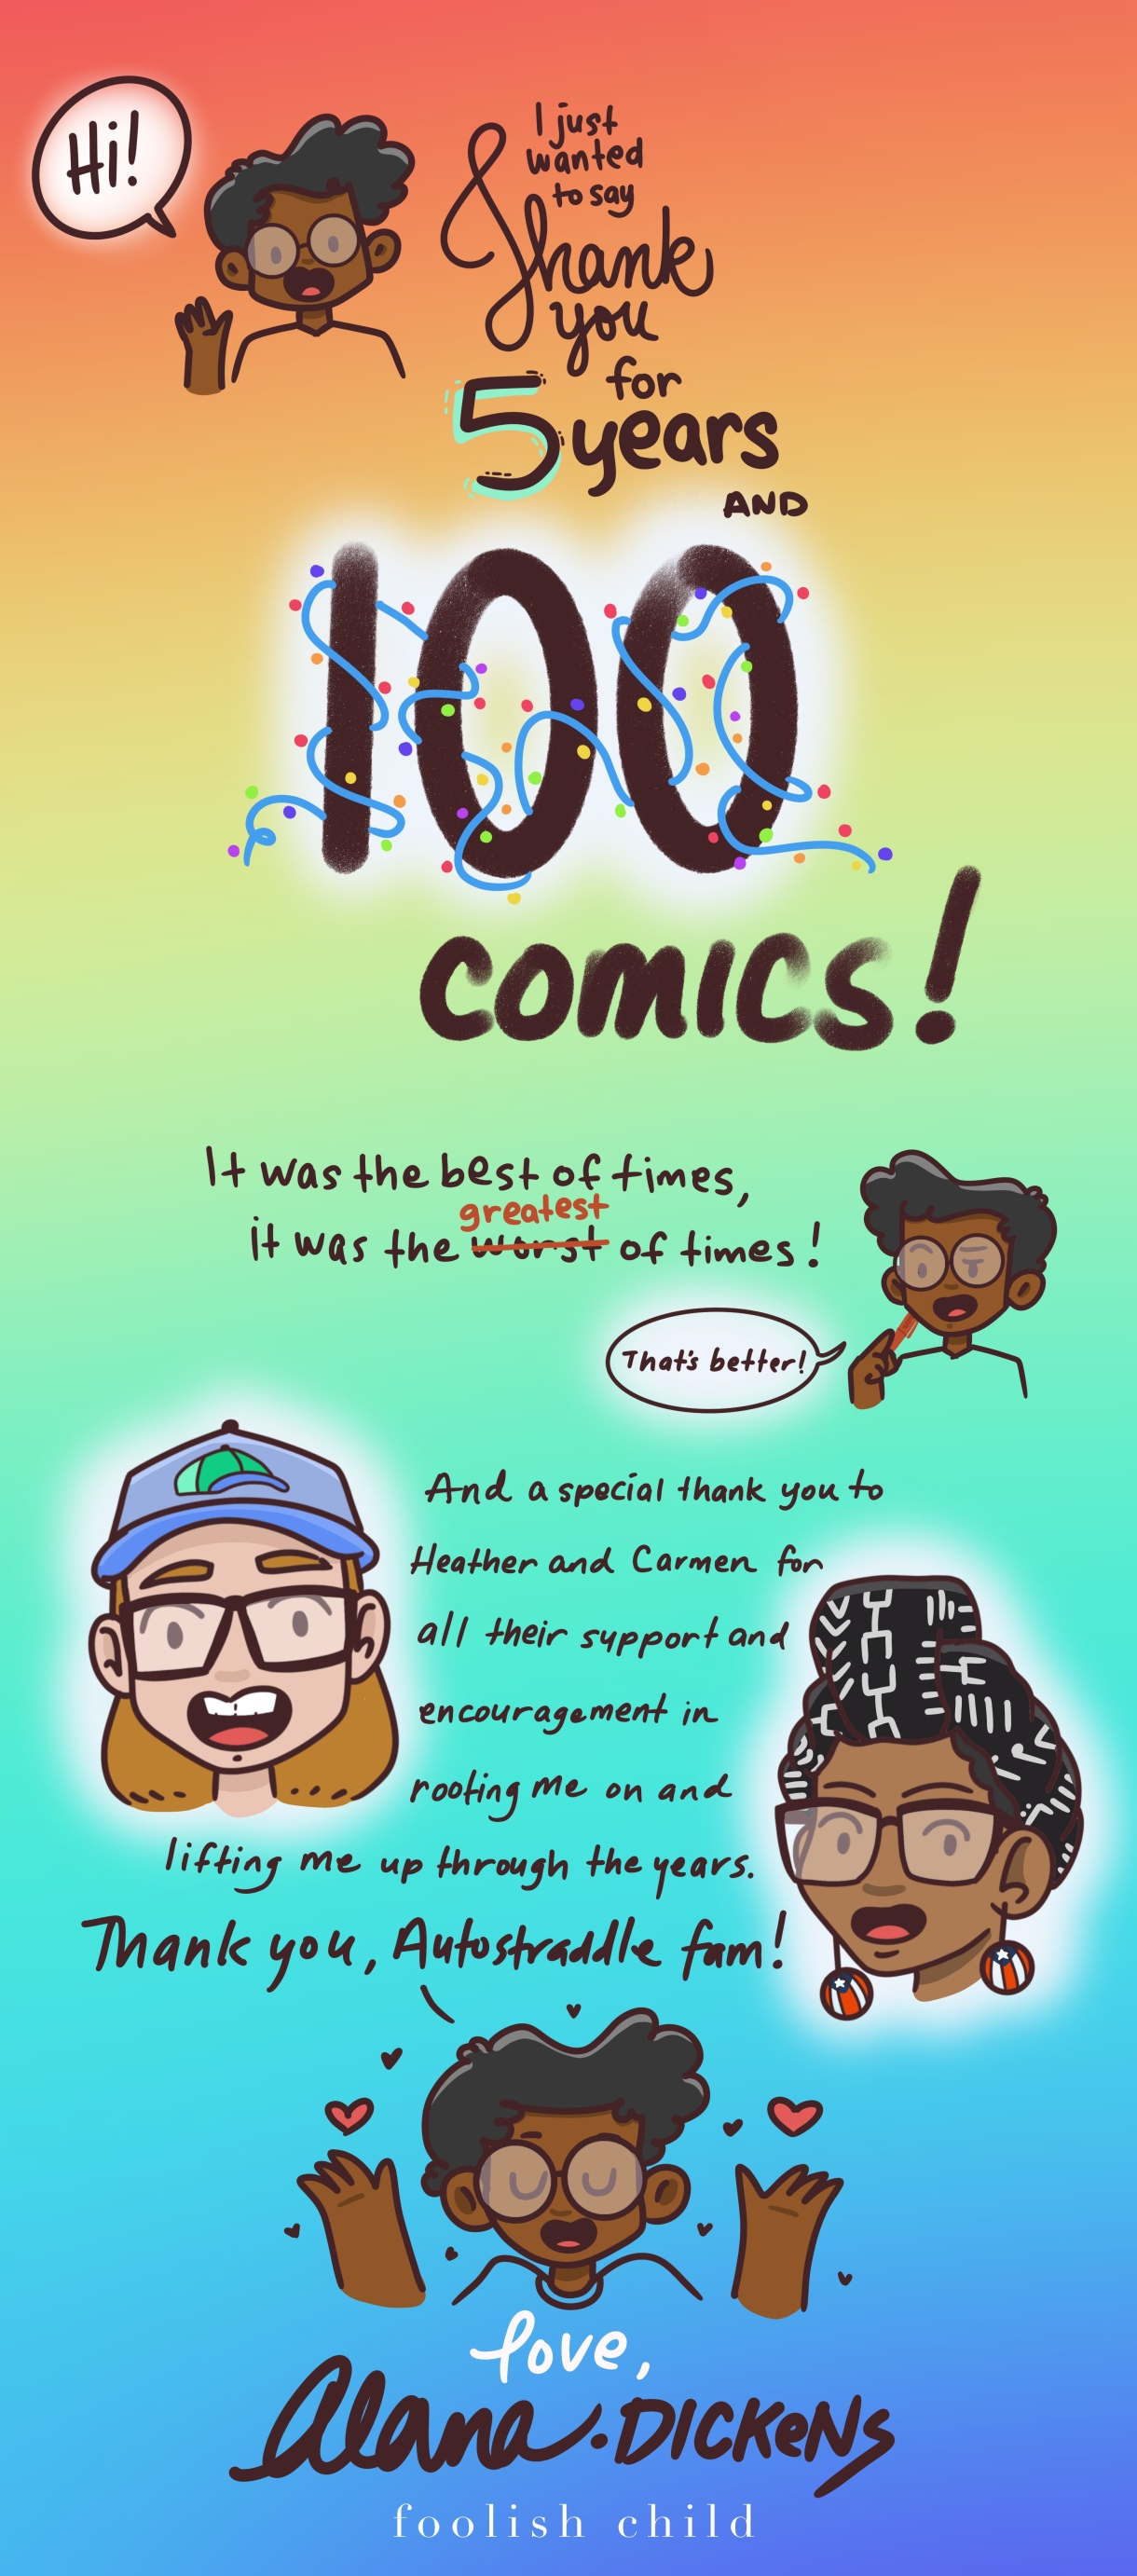 """Against a rainbow background, Dickens waves and says HI! They are excited to celebrate 100 comics, which they are declaring as """"the best of times, and the GREATEST of times."""" In celebration they drew comic versions of their two editors at Autostraddle, Heather and Carmen, and thanked them both for """"all their support and encouragement in rooting me on and lifting me up through the years."""" They end with their hands up and hearts drawn above them, """"Love Alana Dickens, Foolish Child"""""""